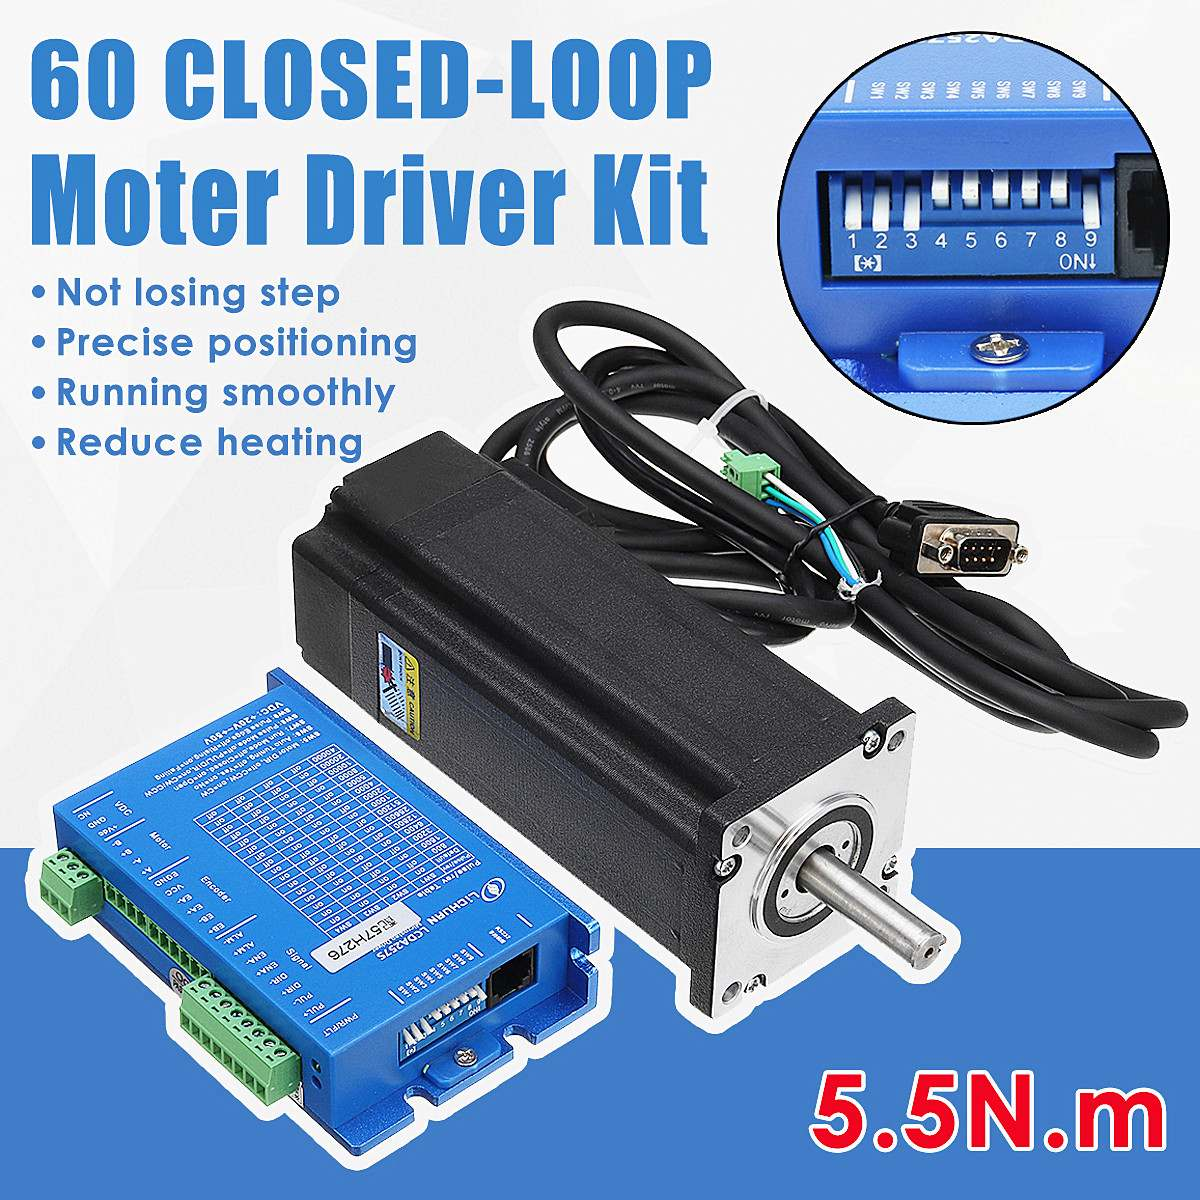 Two-Phase 60 Closed-loop Stepper Motor 5.5 N.M. Driver Kit LCDA257S+LC60H2127Two-Phase 60 Closed-loop Stepper Motor 5.5 N.M. Driver Kit LCDA257S+LC60H2127